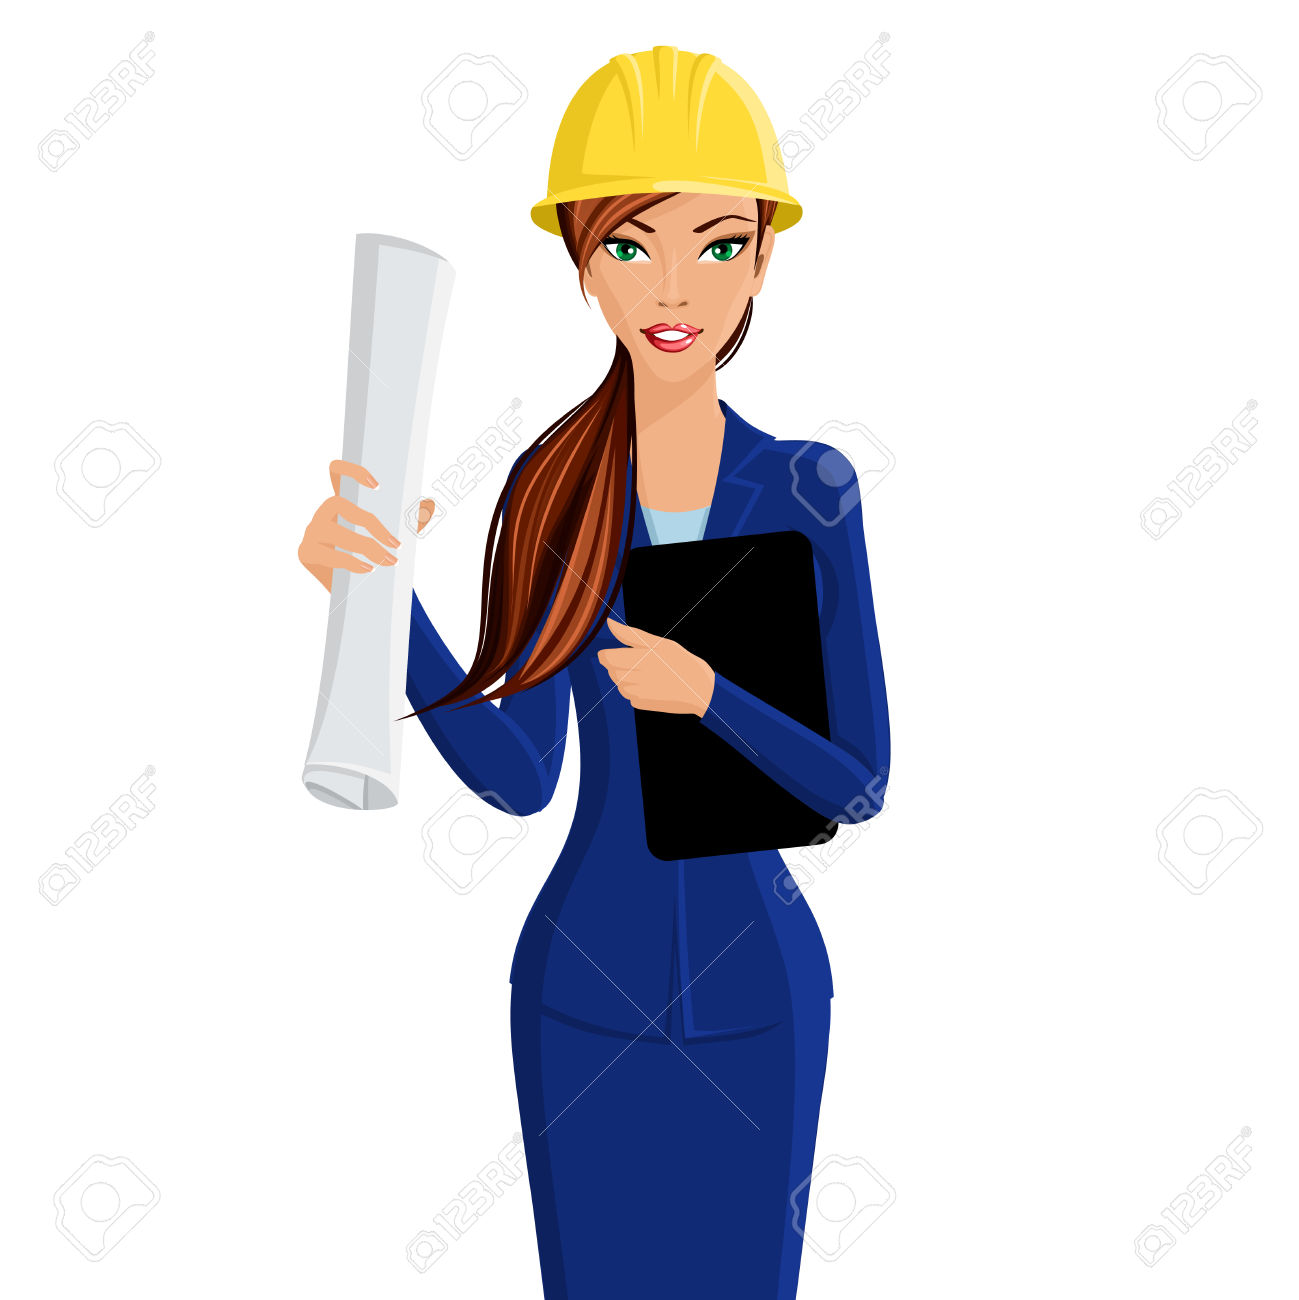 girl civil engineer clipart #19